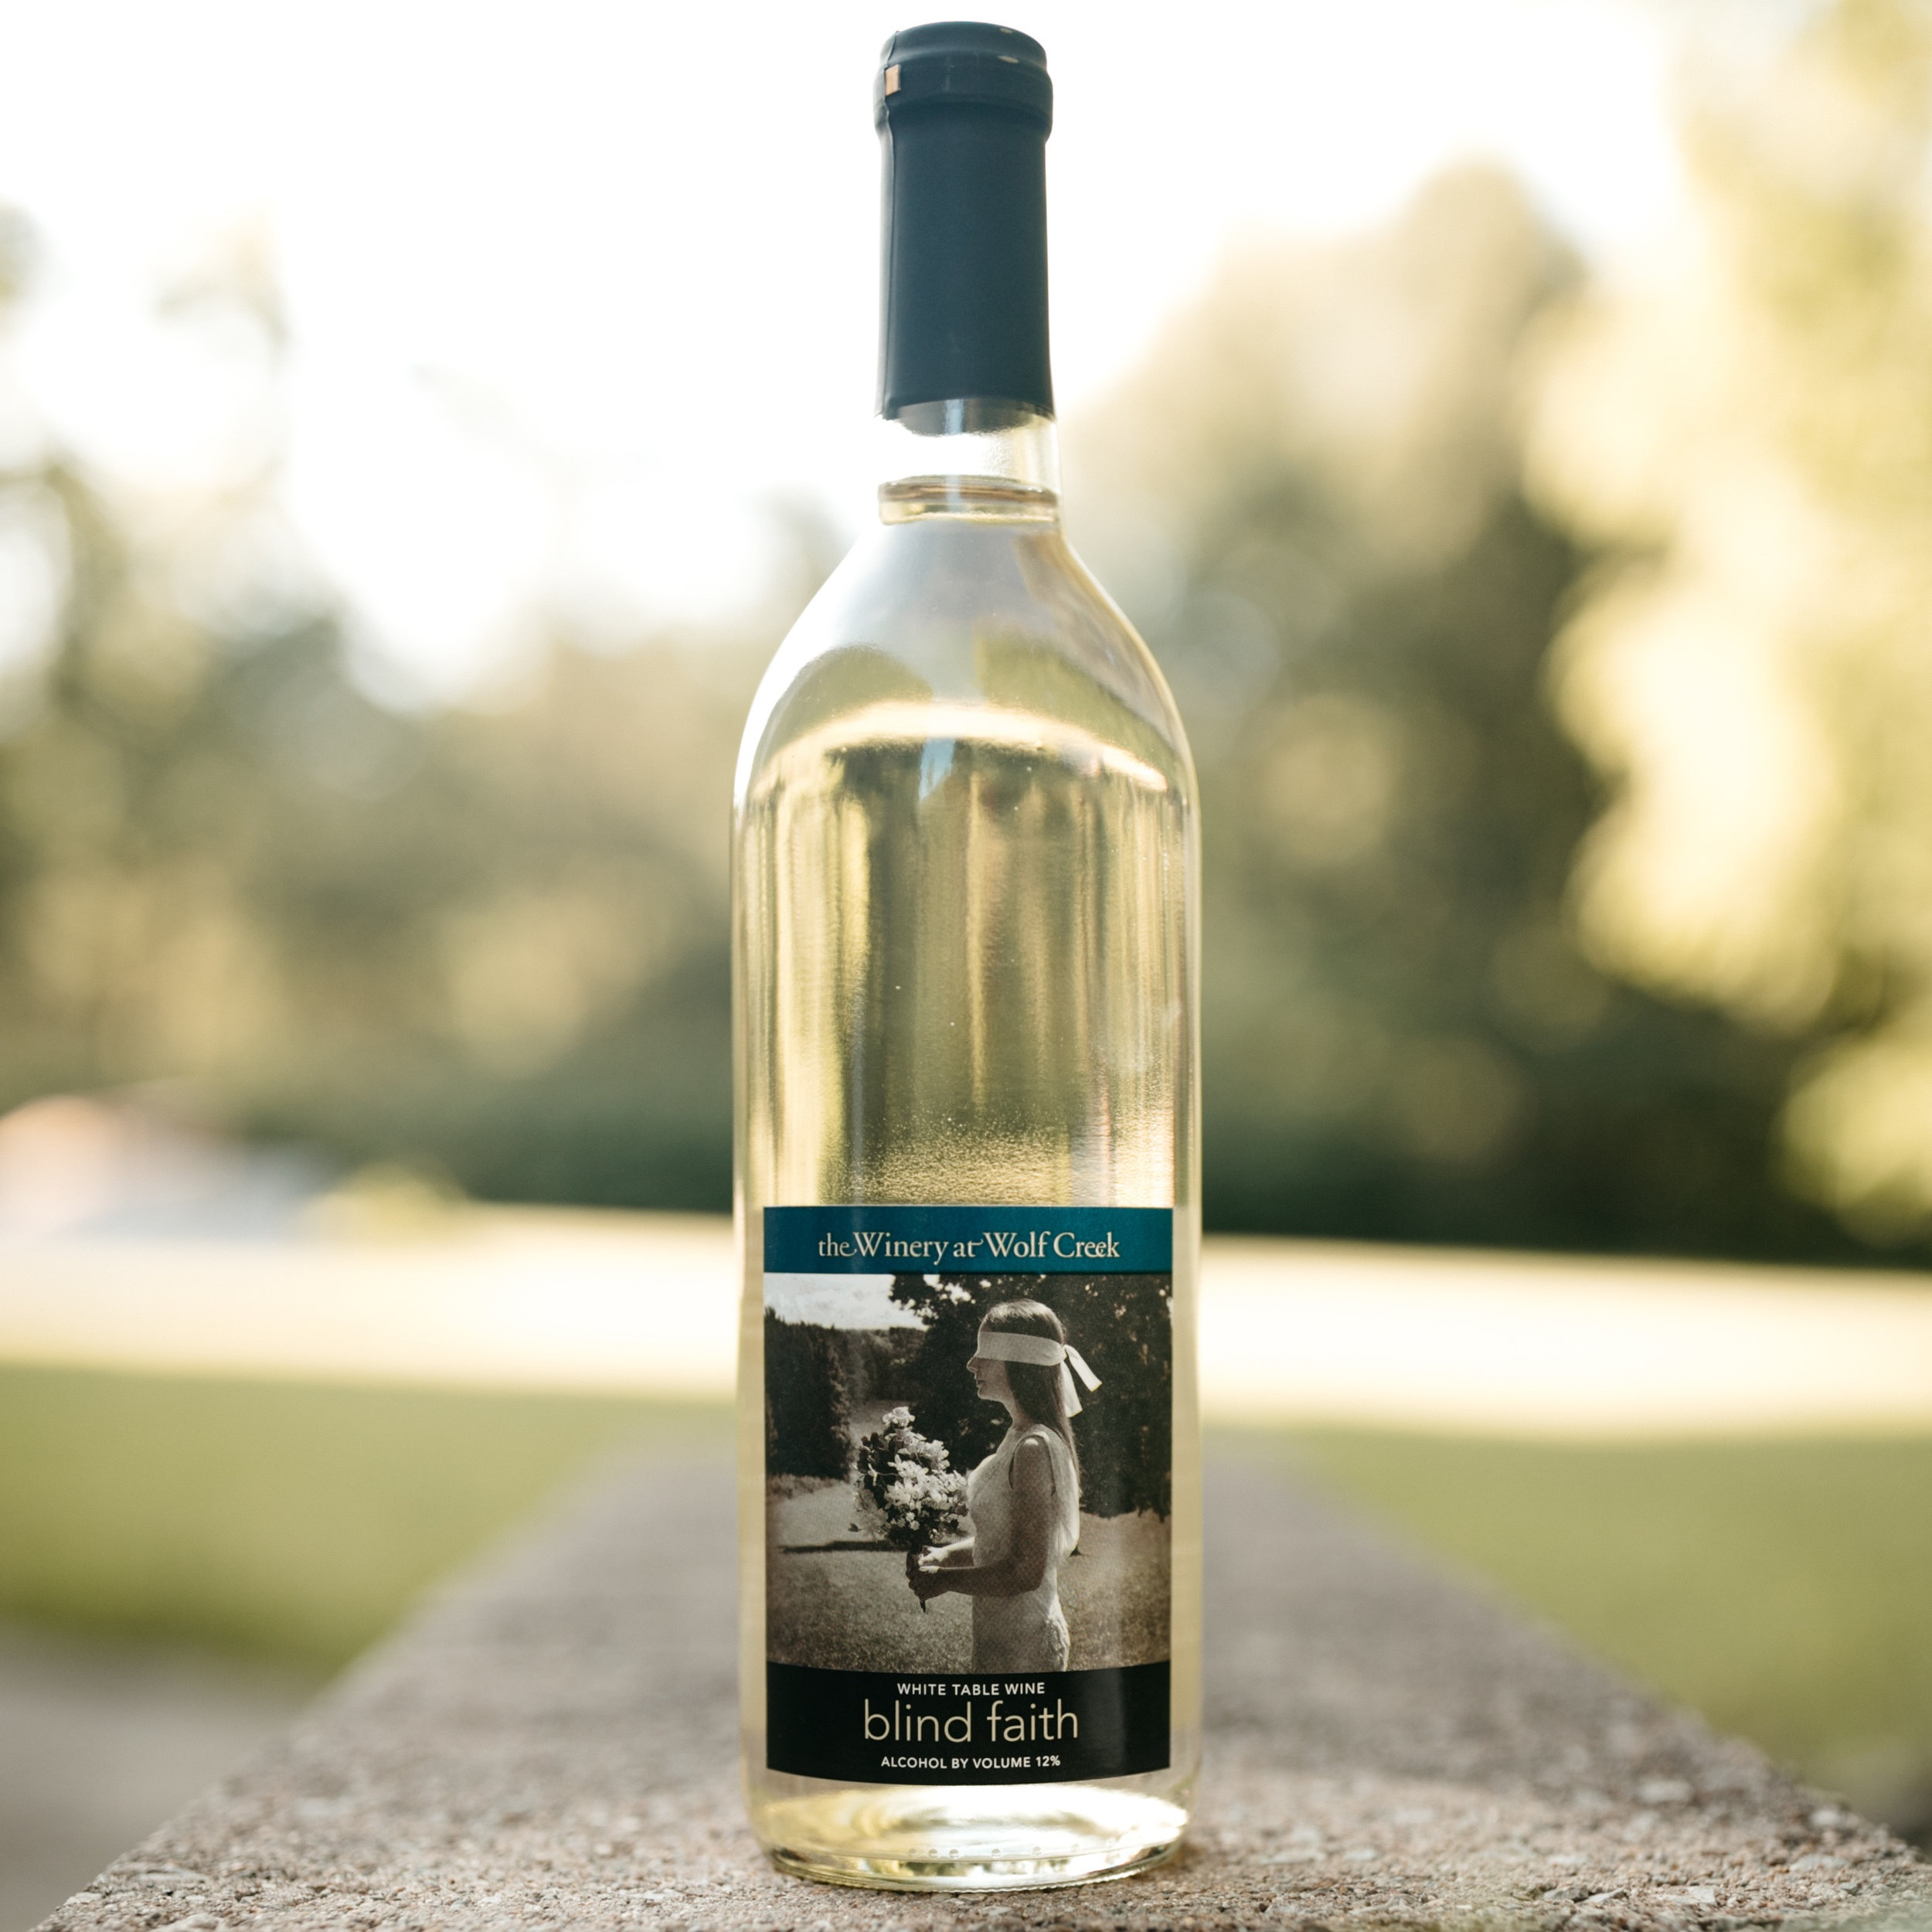 blind faith - A dry white wine made from Seyval Blanc grapes which pairs well with chicken, seafood and summer fruits.